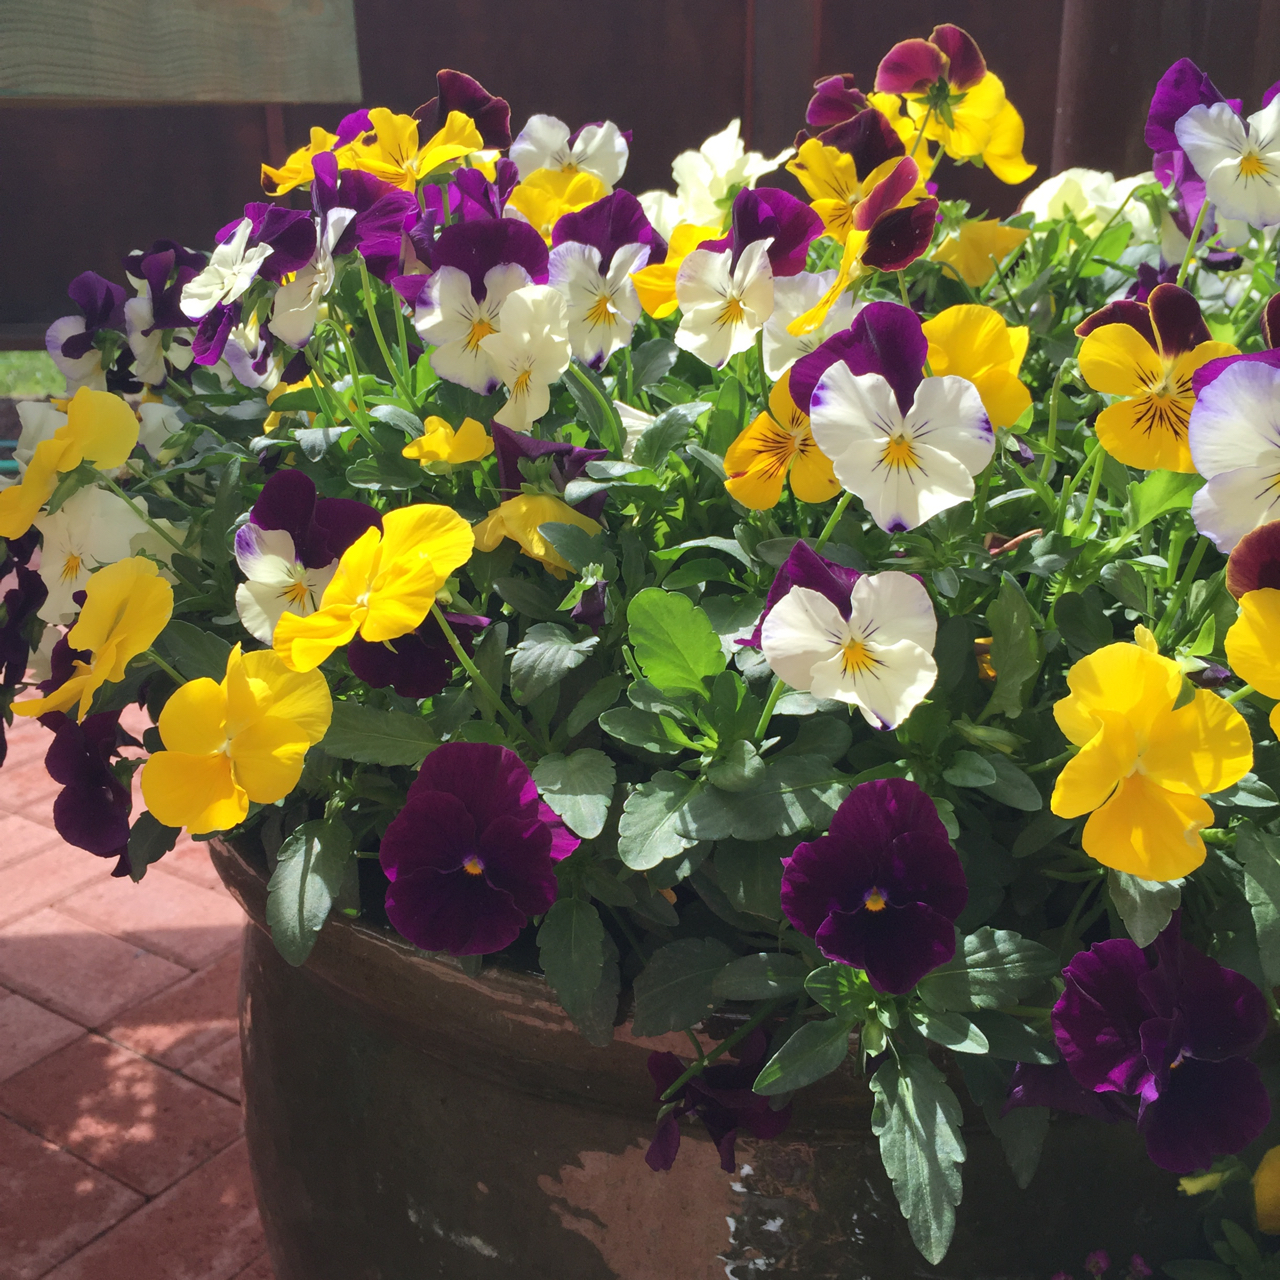 pansy growit